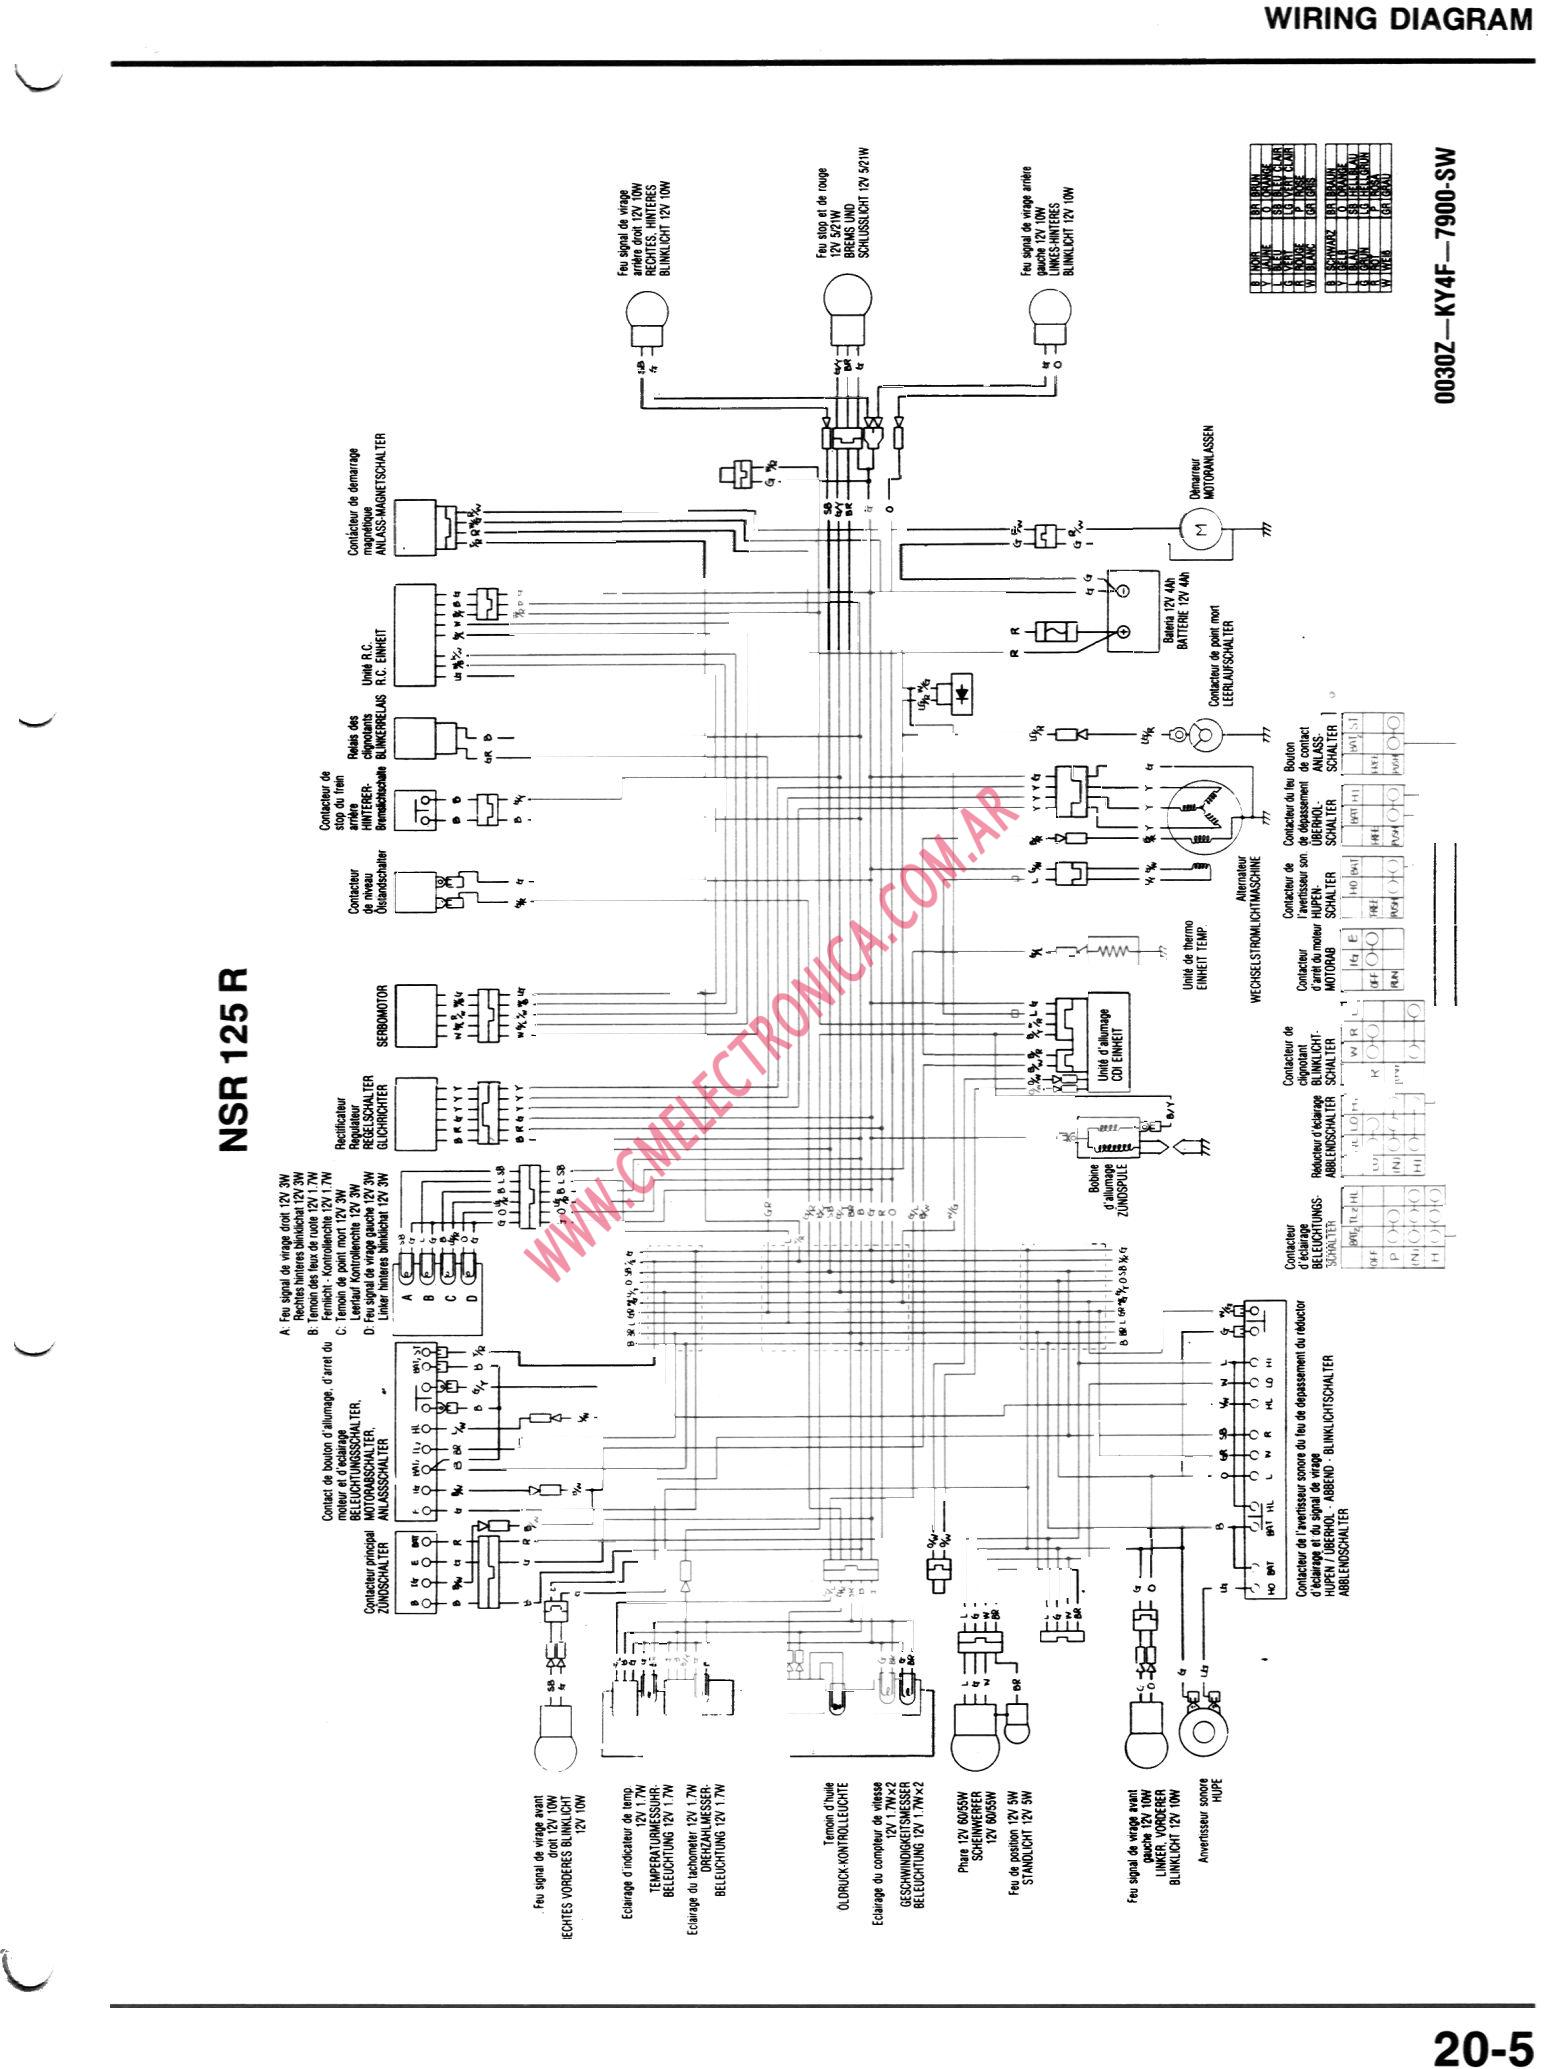 [DIAGRAM] Good Wiring Diagram Honda Cm 185 200 FULL